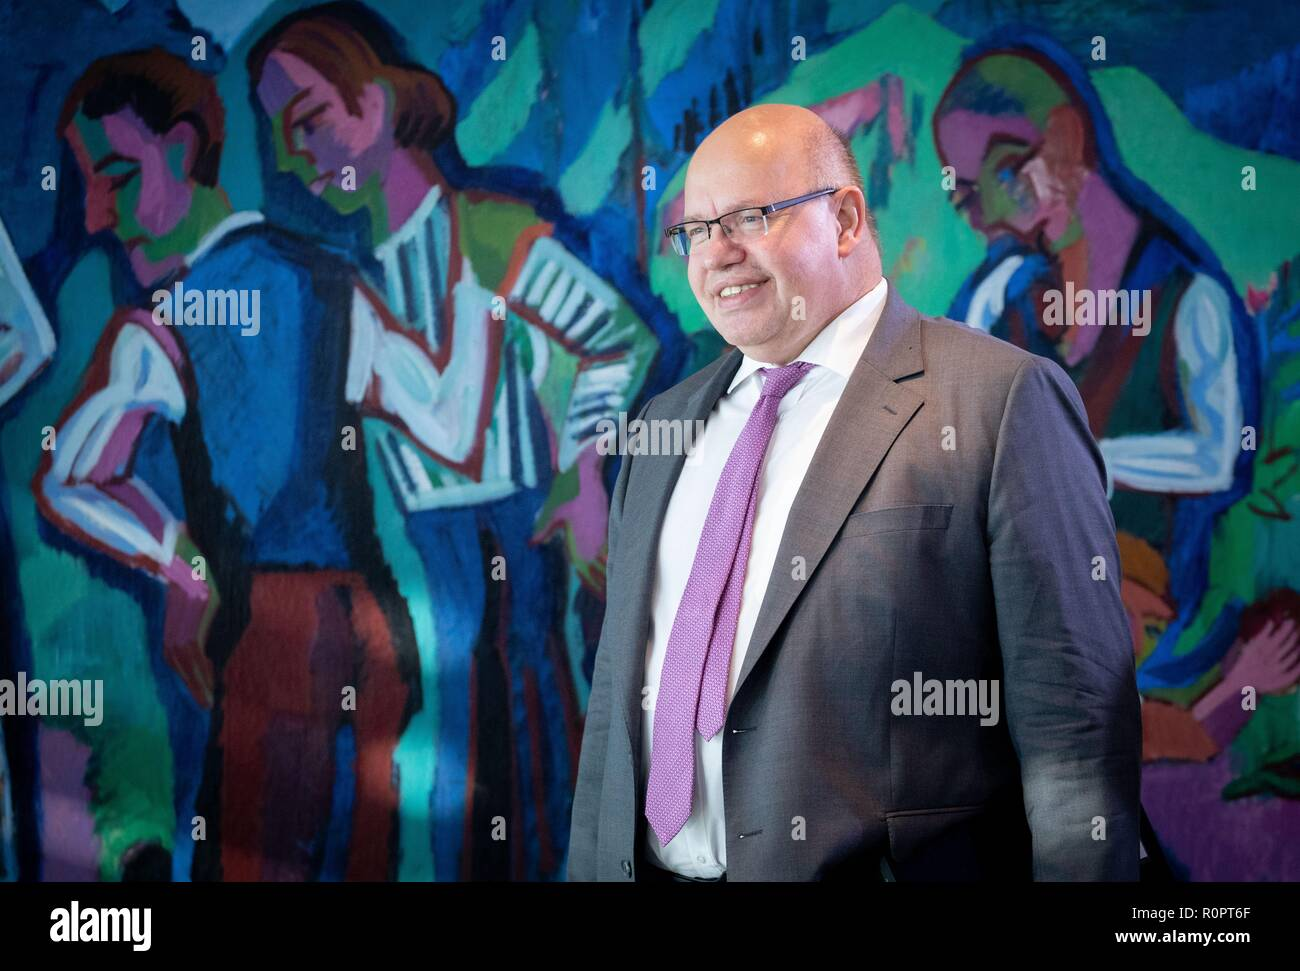 Berlin, Germany. 07th Nov, 2018. Peter Altmaier (CDU), Federal Minister of Economics and Energy, attends the Federal Cabinet meeting at the Federal Chancellery. Credit: Kay Nietfeld/dpa/Alamy Live News - Stock Image